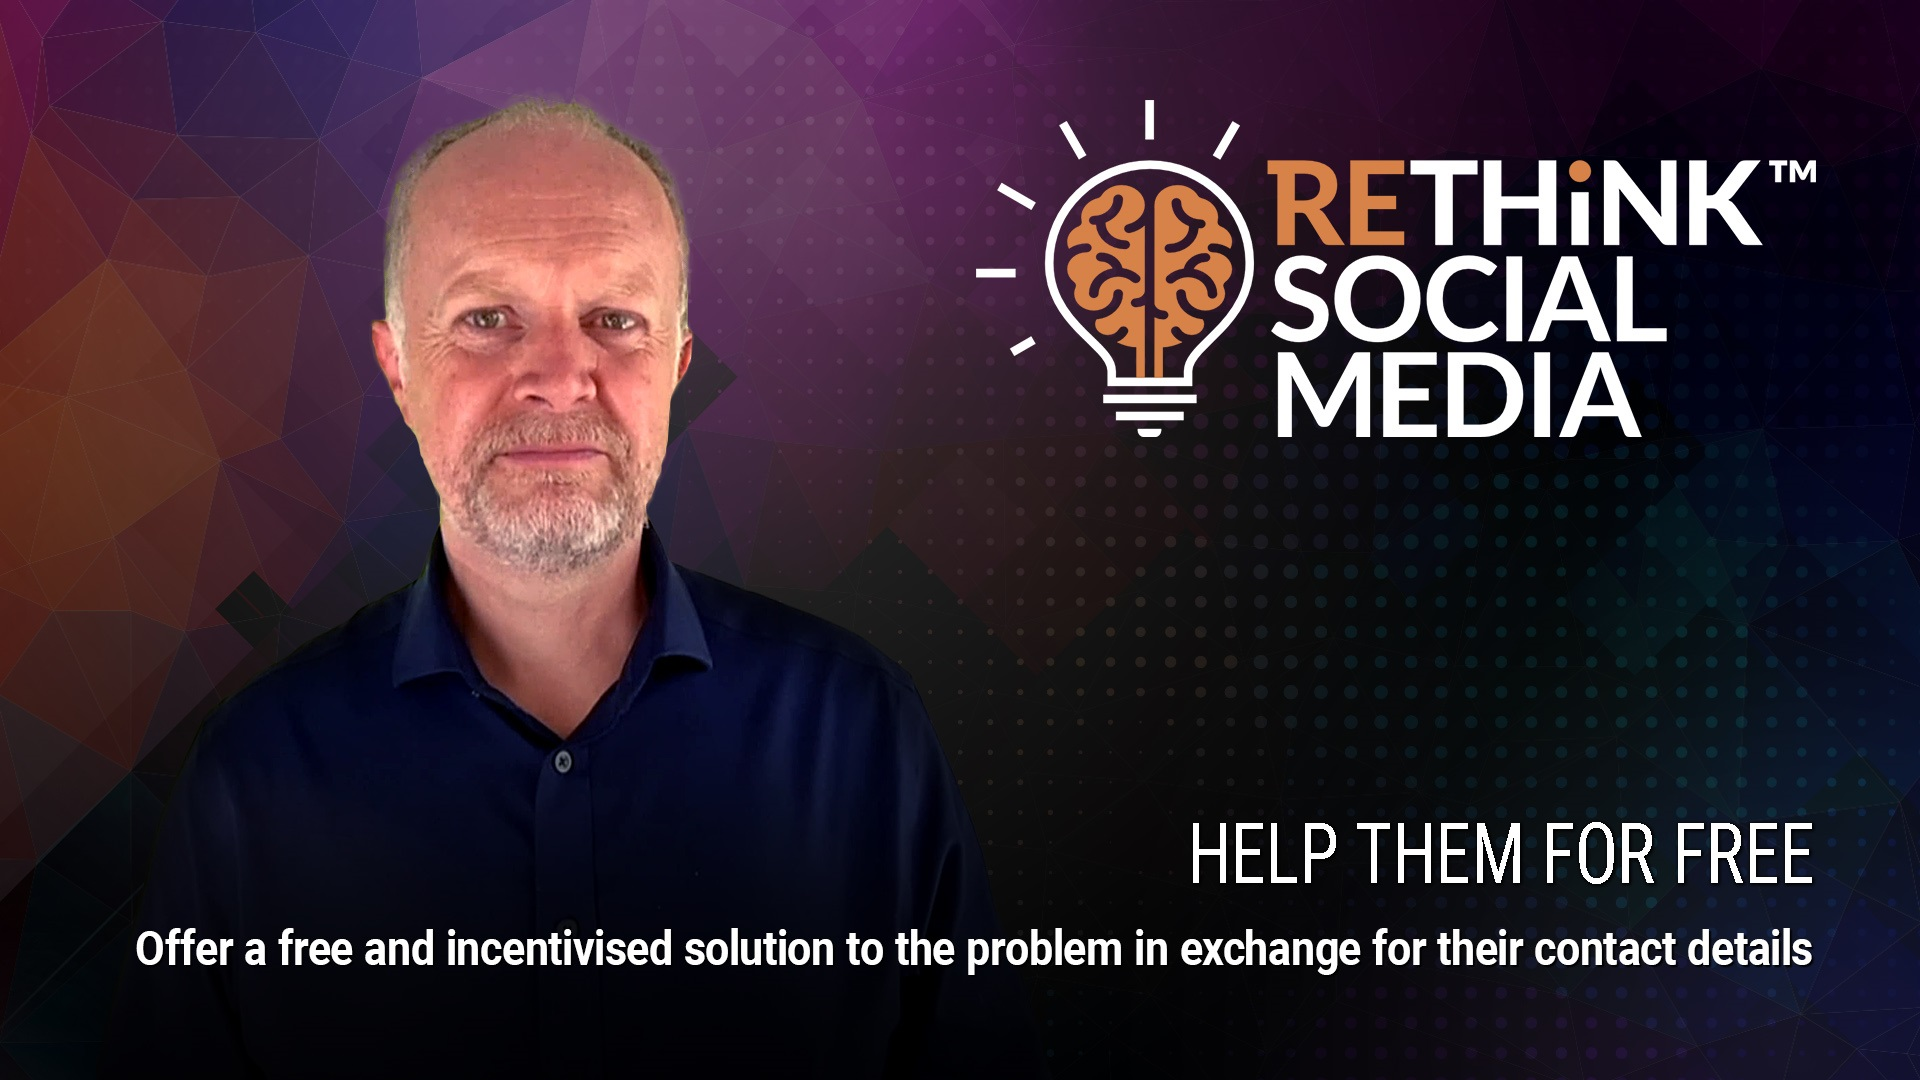 Episode 5 - Help For Free with Nigel Best